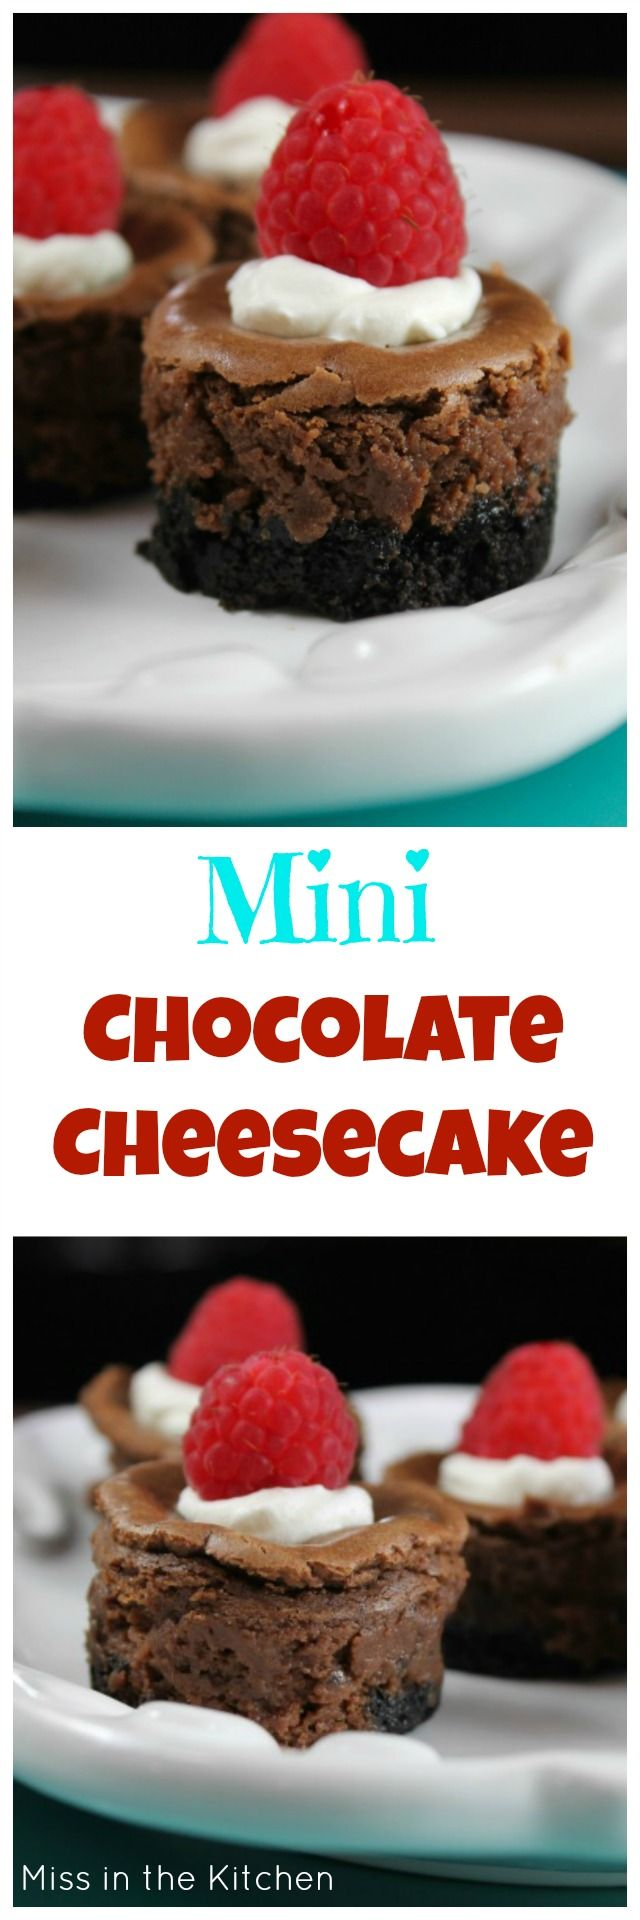 Mini Chocolate Cheesecake Recipe perfect for any holiday or family celebration. Found at MissintheKitchen.com